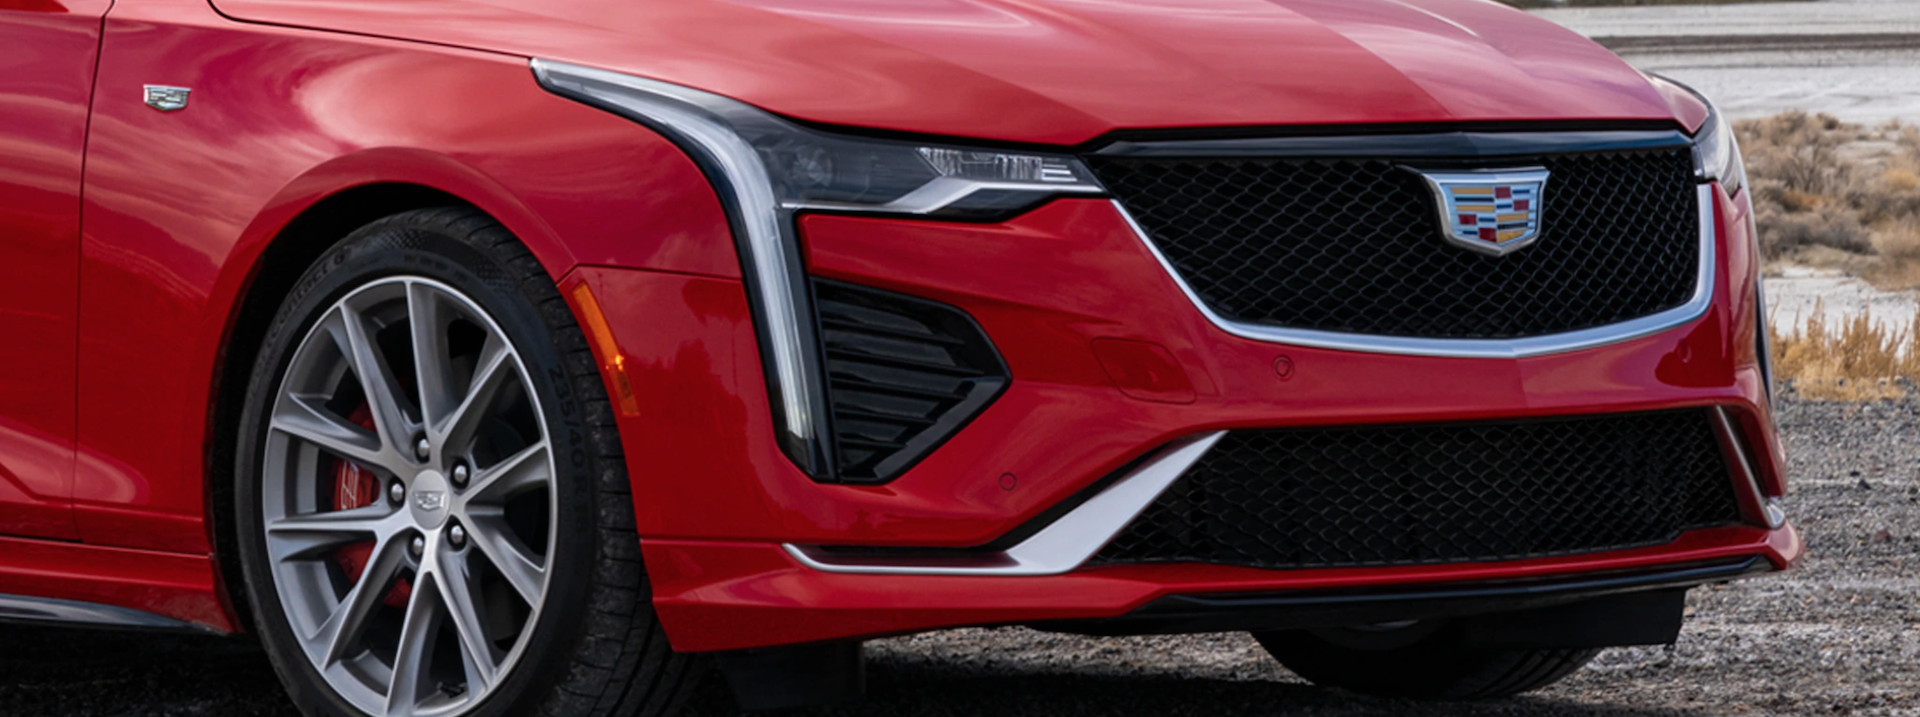 Picture of the Cadillac CT4 (2021 model).